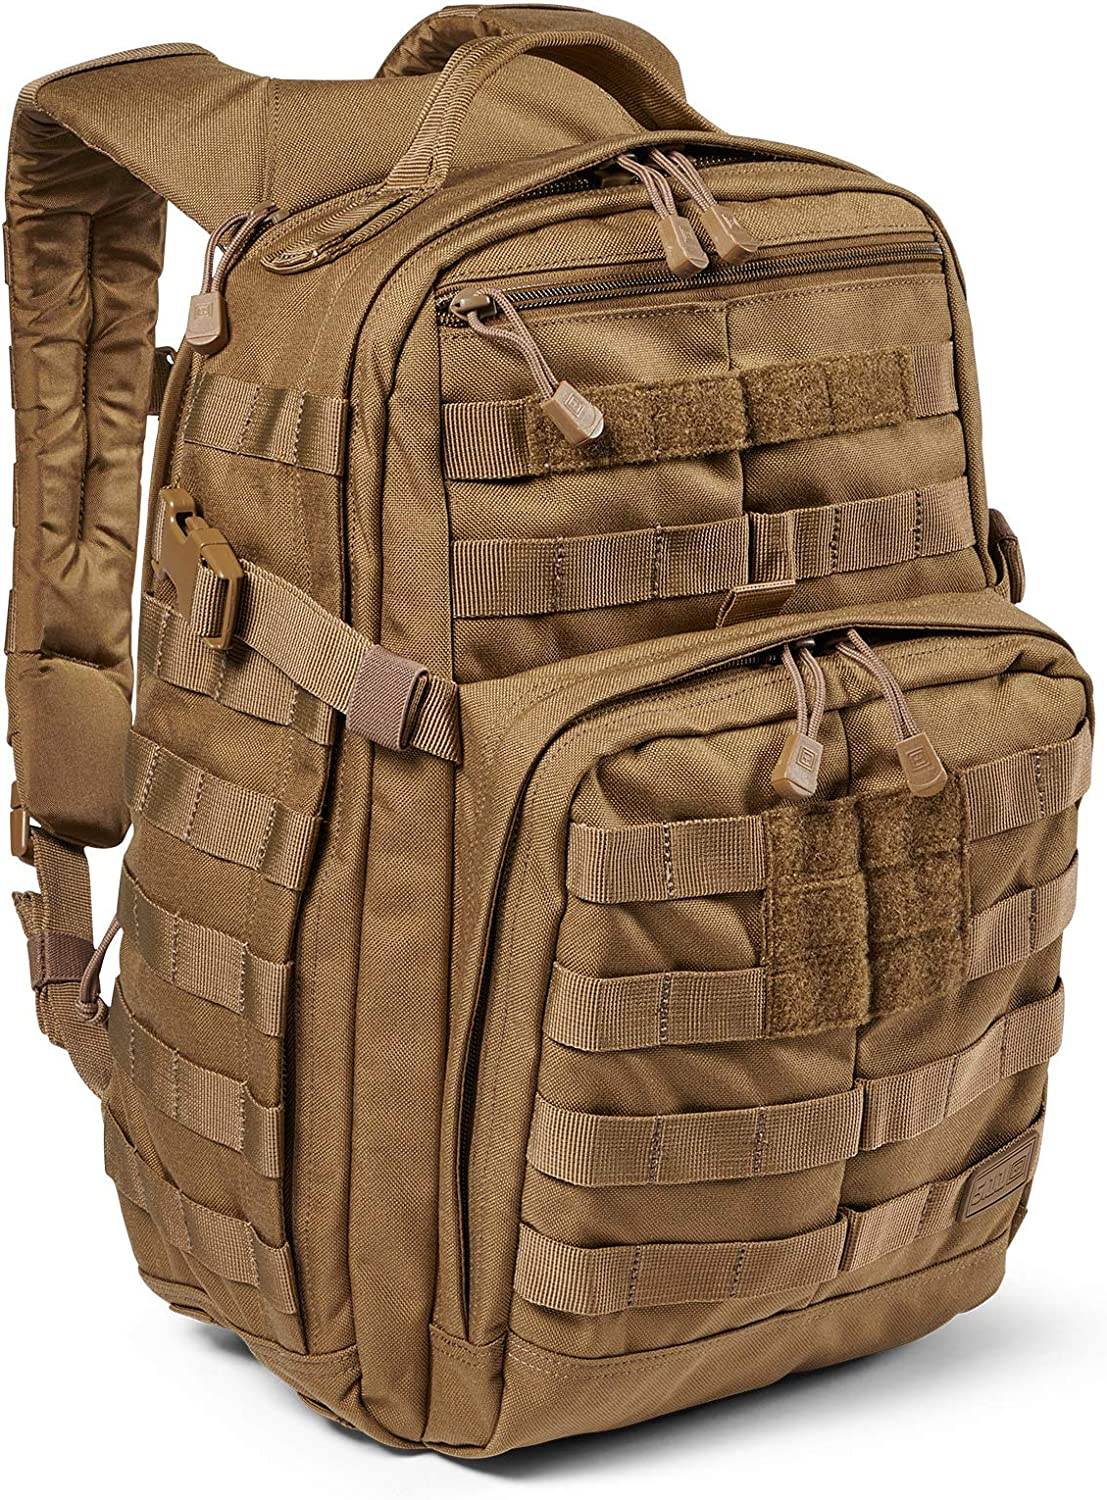 5.11 Tactical Backpack – Rush 12 2.0 – Military Molle Pack, CCW and Laptop Compartment, 24 Liter, Small, Style 56561, Kangaroo